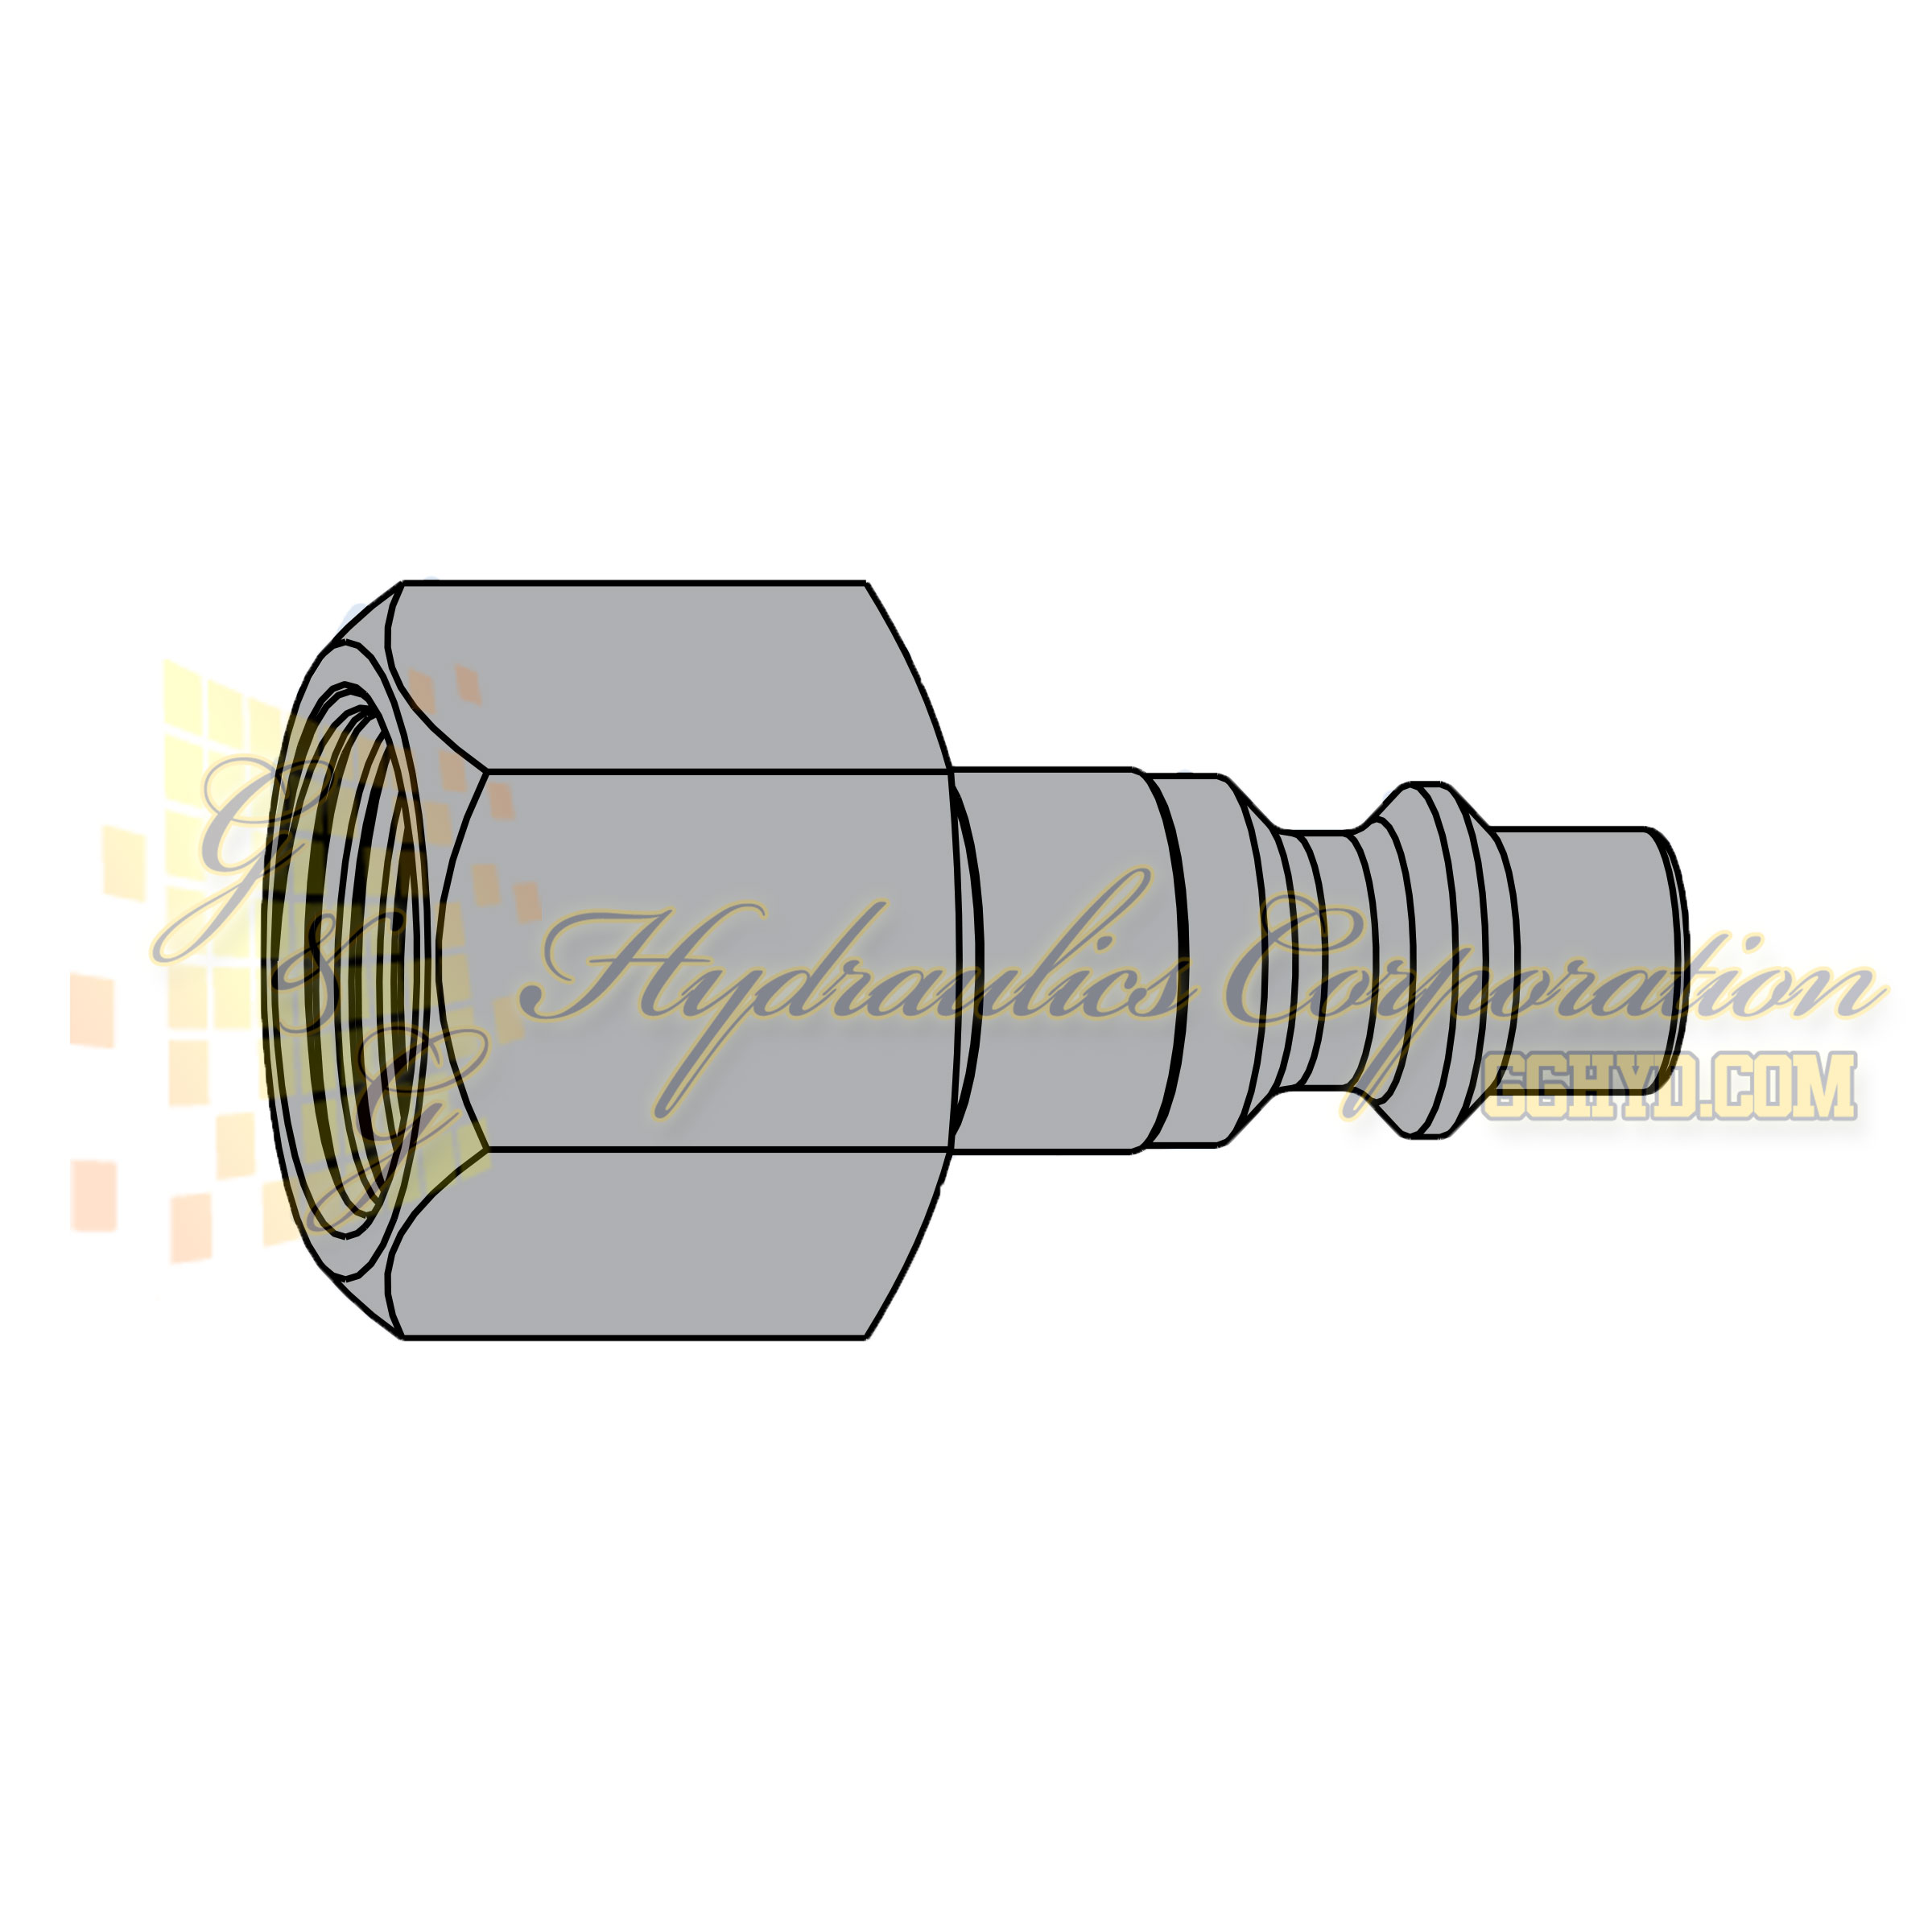 "10-310-5202 CEJN Quick Disconnect Nipple, 1/4"" BSPP Female Threads, 232 PSI (16 bar)"